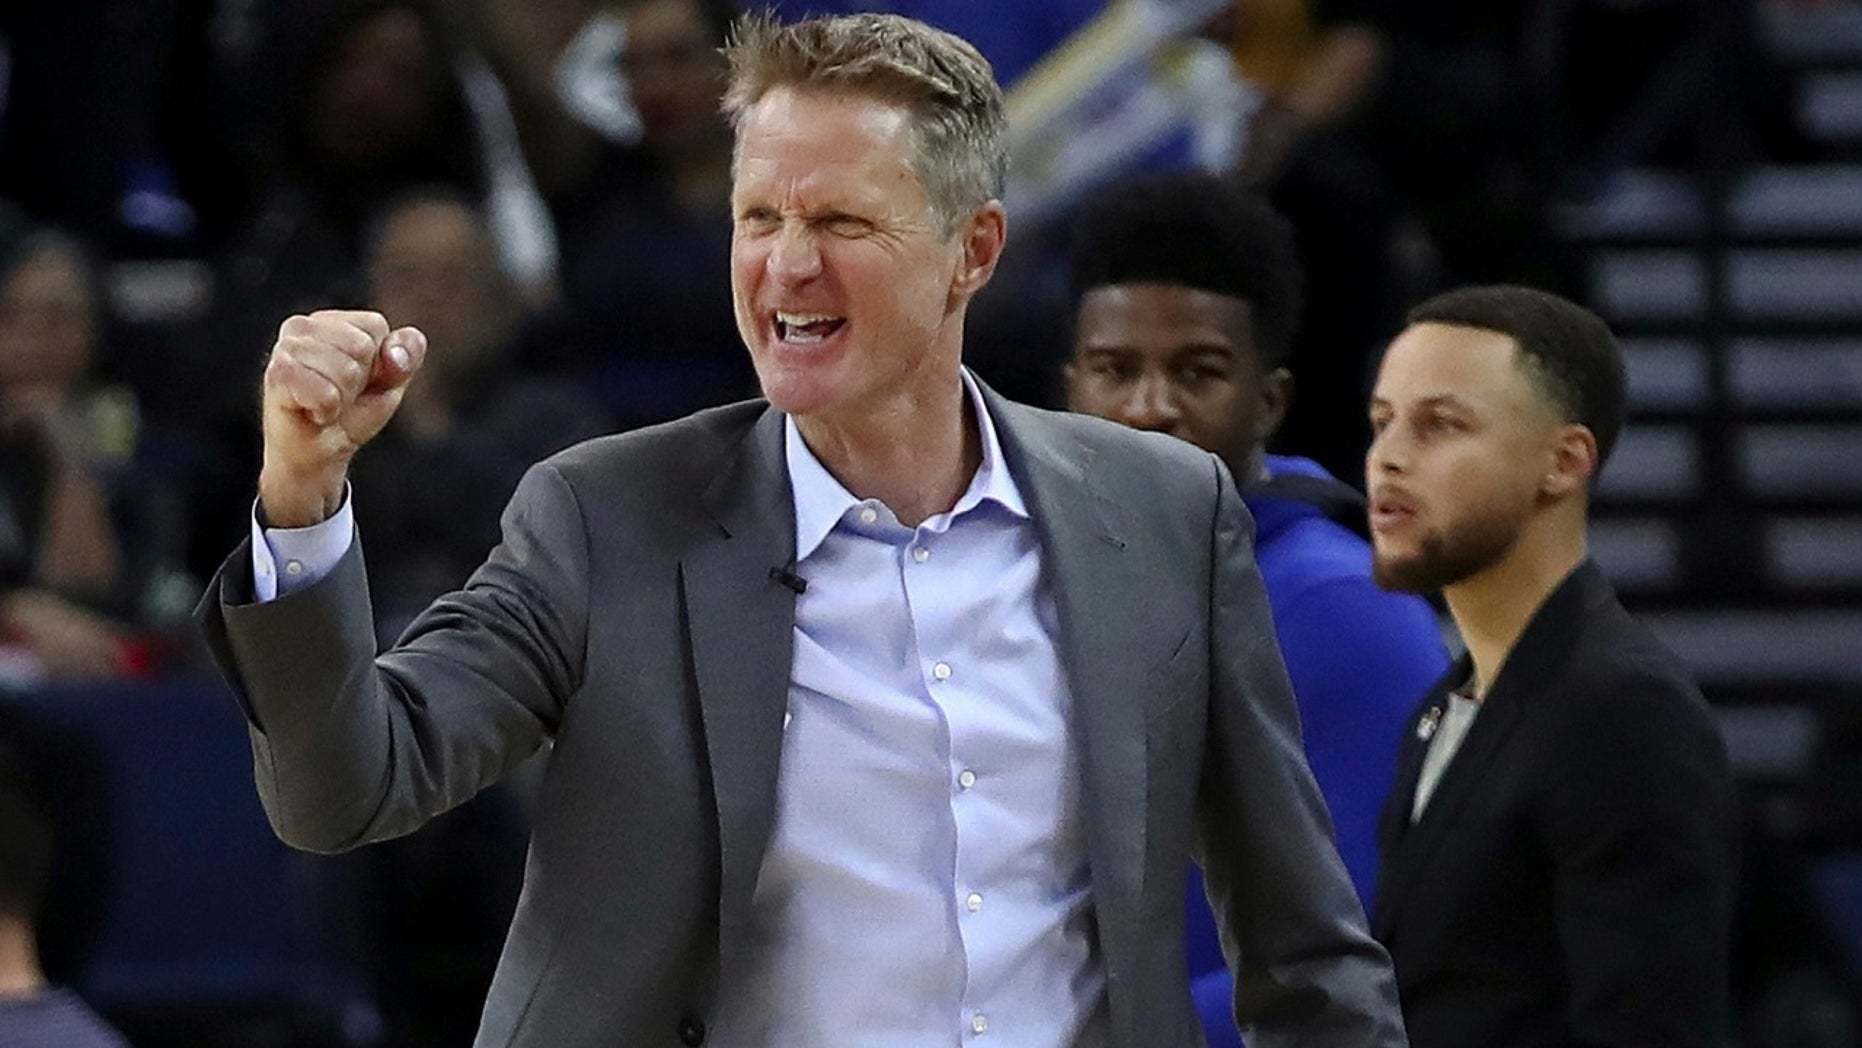 Golden State Warriors head coach Steve Kerr said he has mixed feelings on military displays before NBA games.